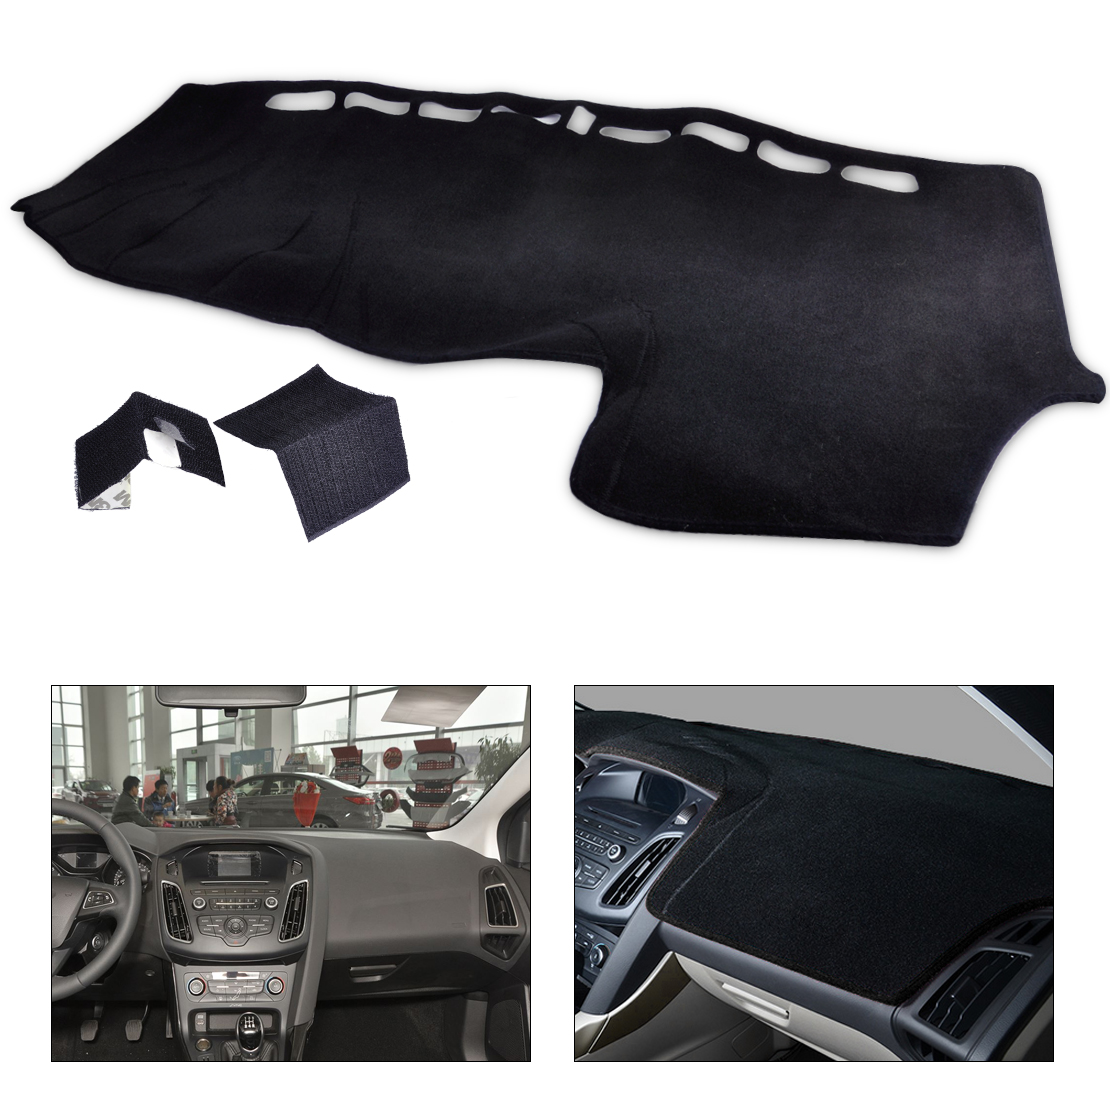 DWCX LHD Inner Dashboard Carpet Dash Cover Pad DashMat Mat Sun Shade Protector fit for Ford Focus MK3 2012 2013 2014 2015 2016 dashboard cover